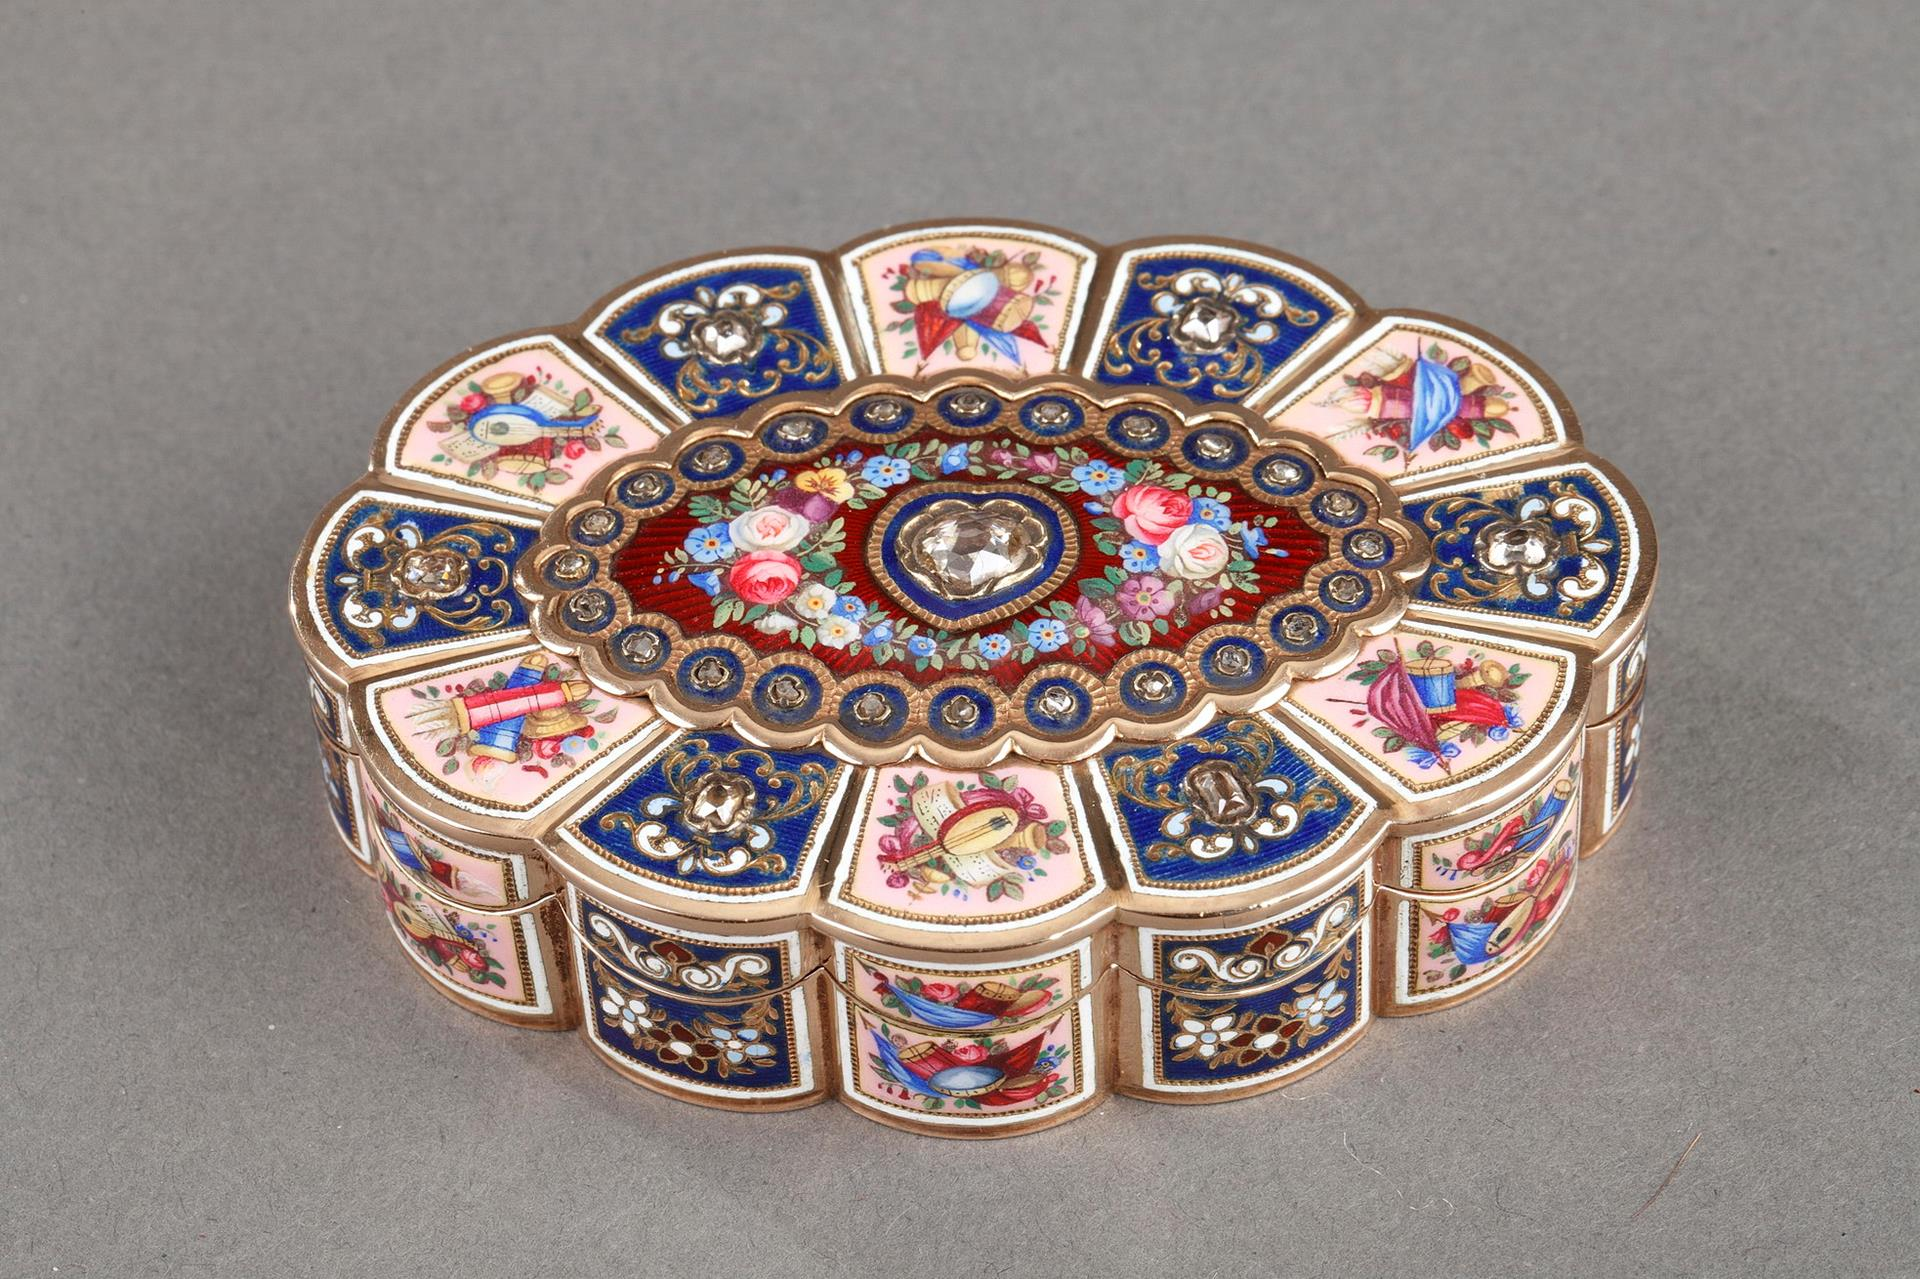 Enameled Gold Snuff Box with Diamonds.<br>Early 19th Century Swiss Work